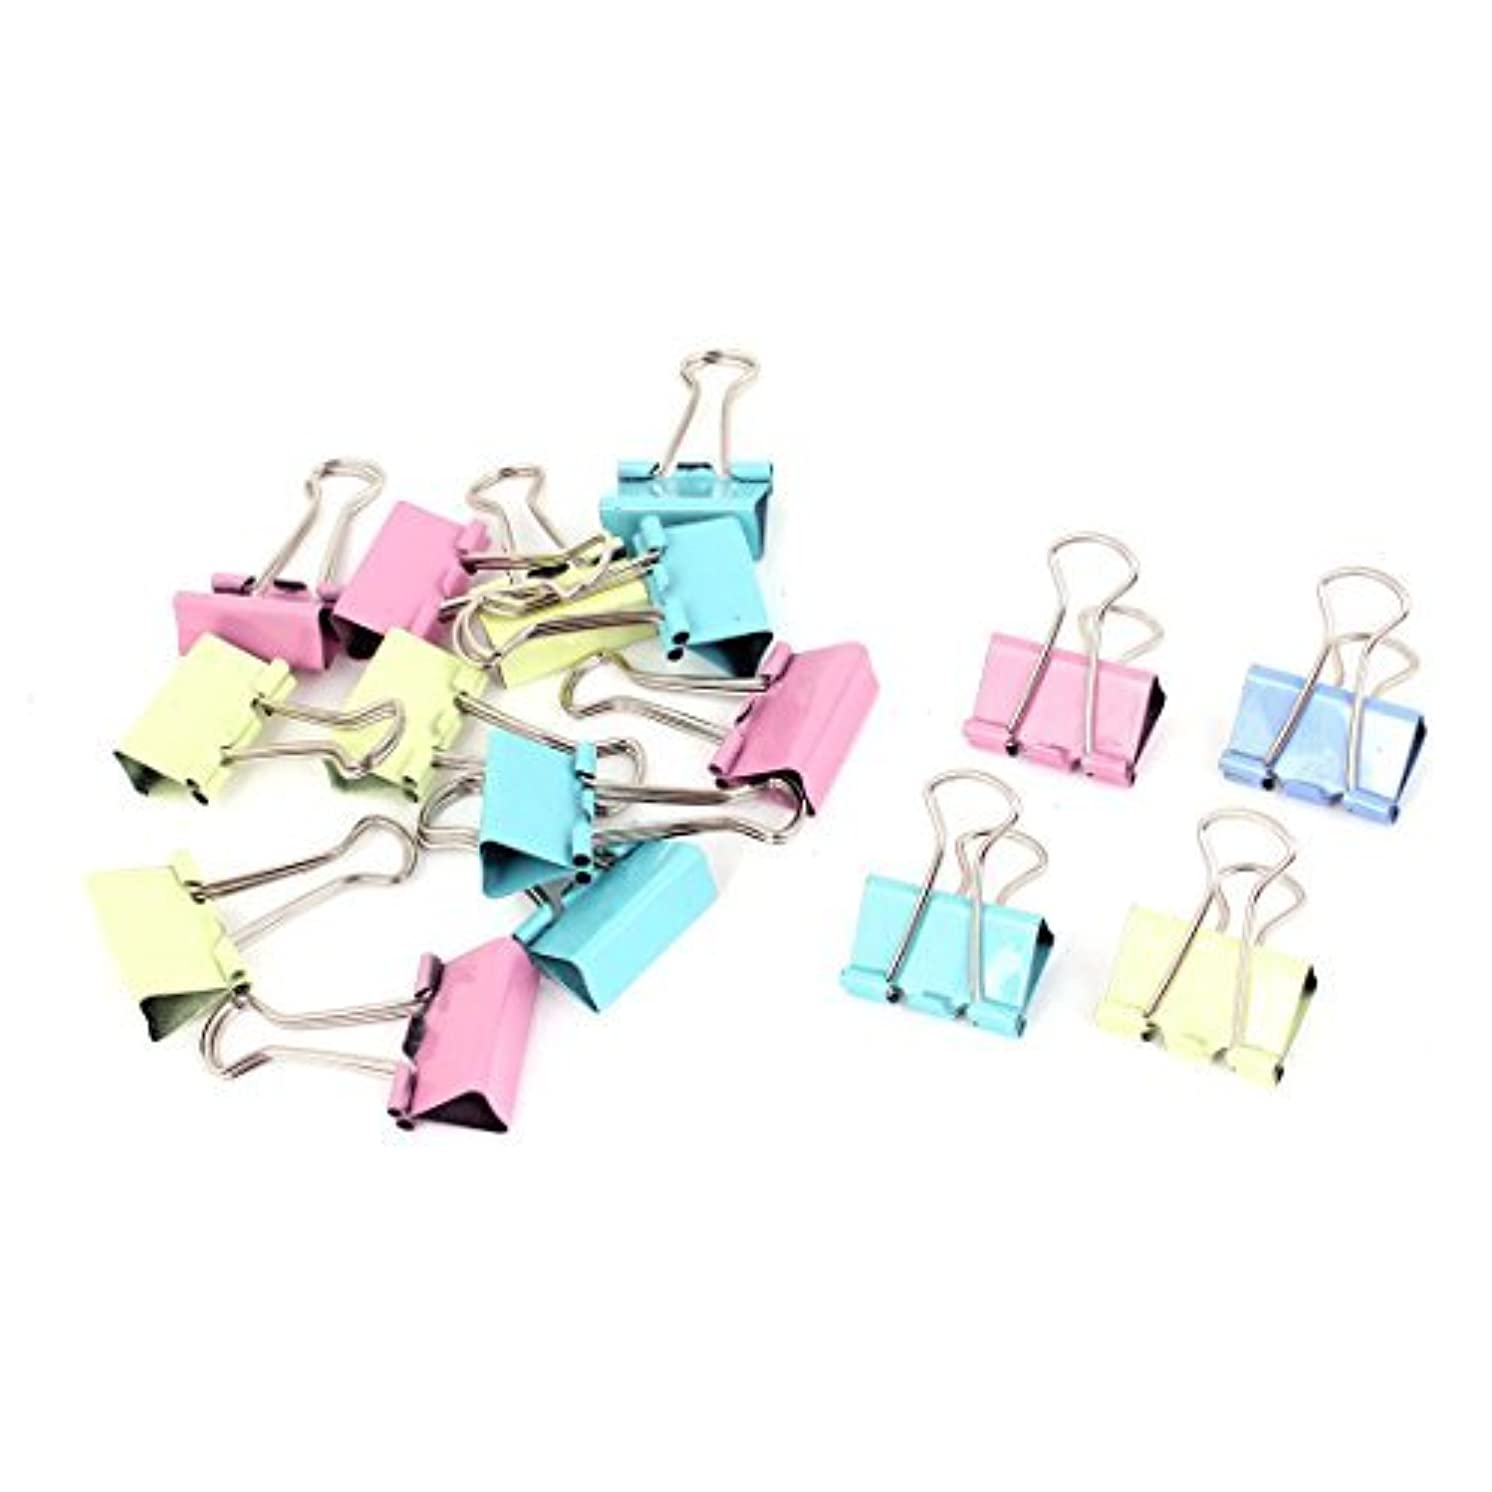 DealMux Metal School Office Test Paper File Binder Clip 16pcs Multicolor